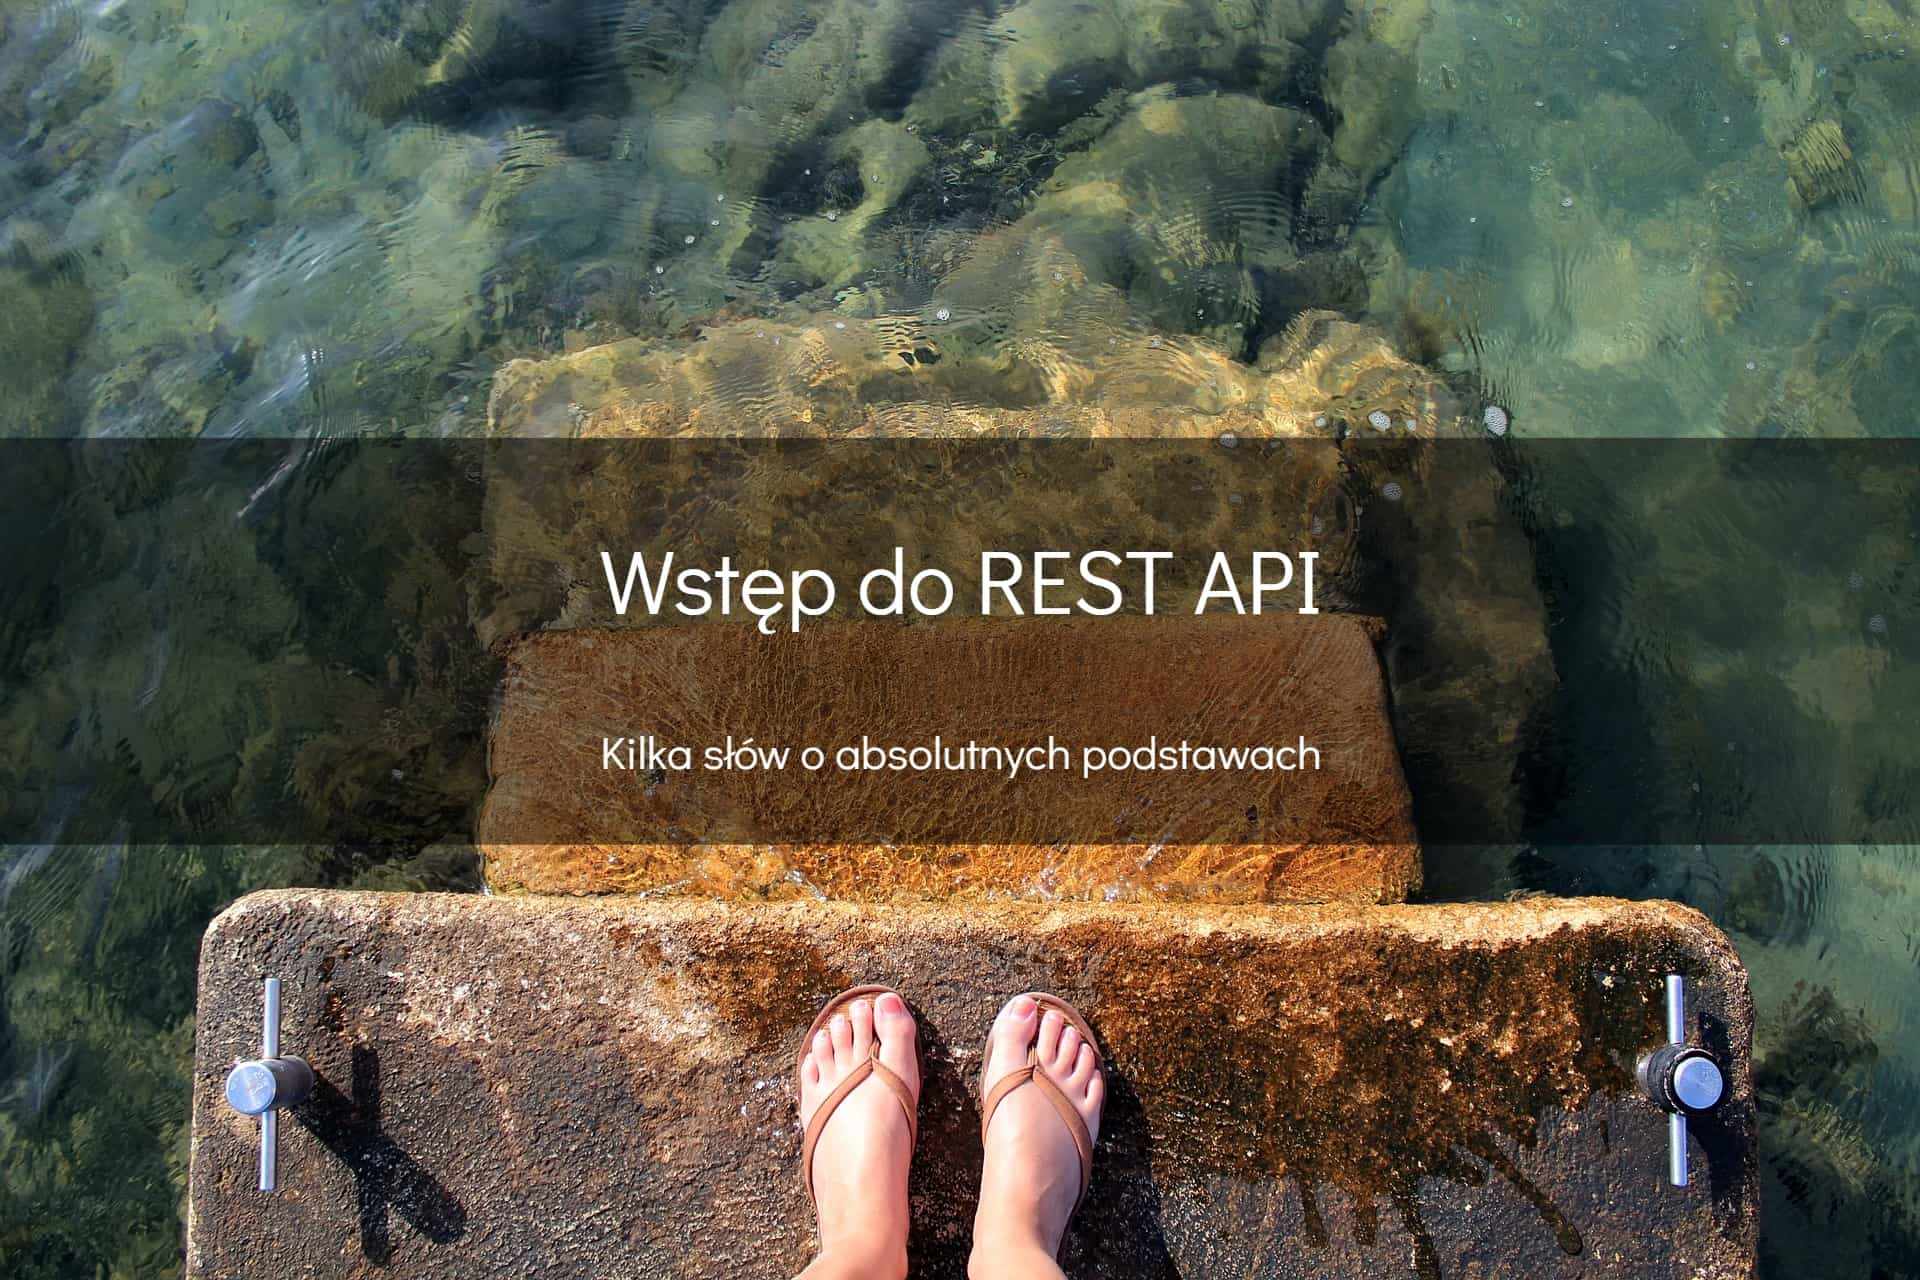 Wstęp do REST API